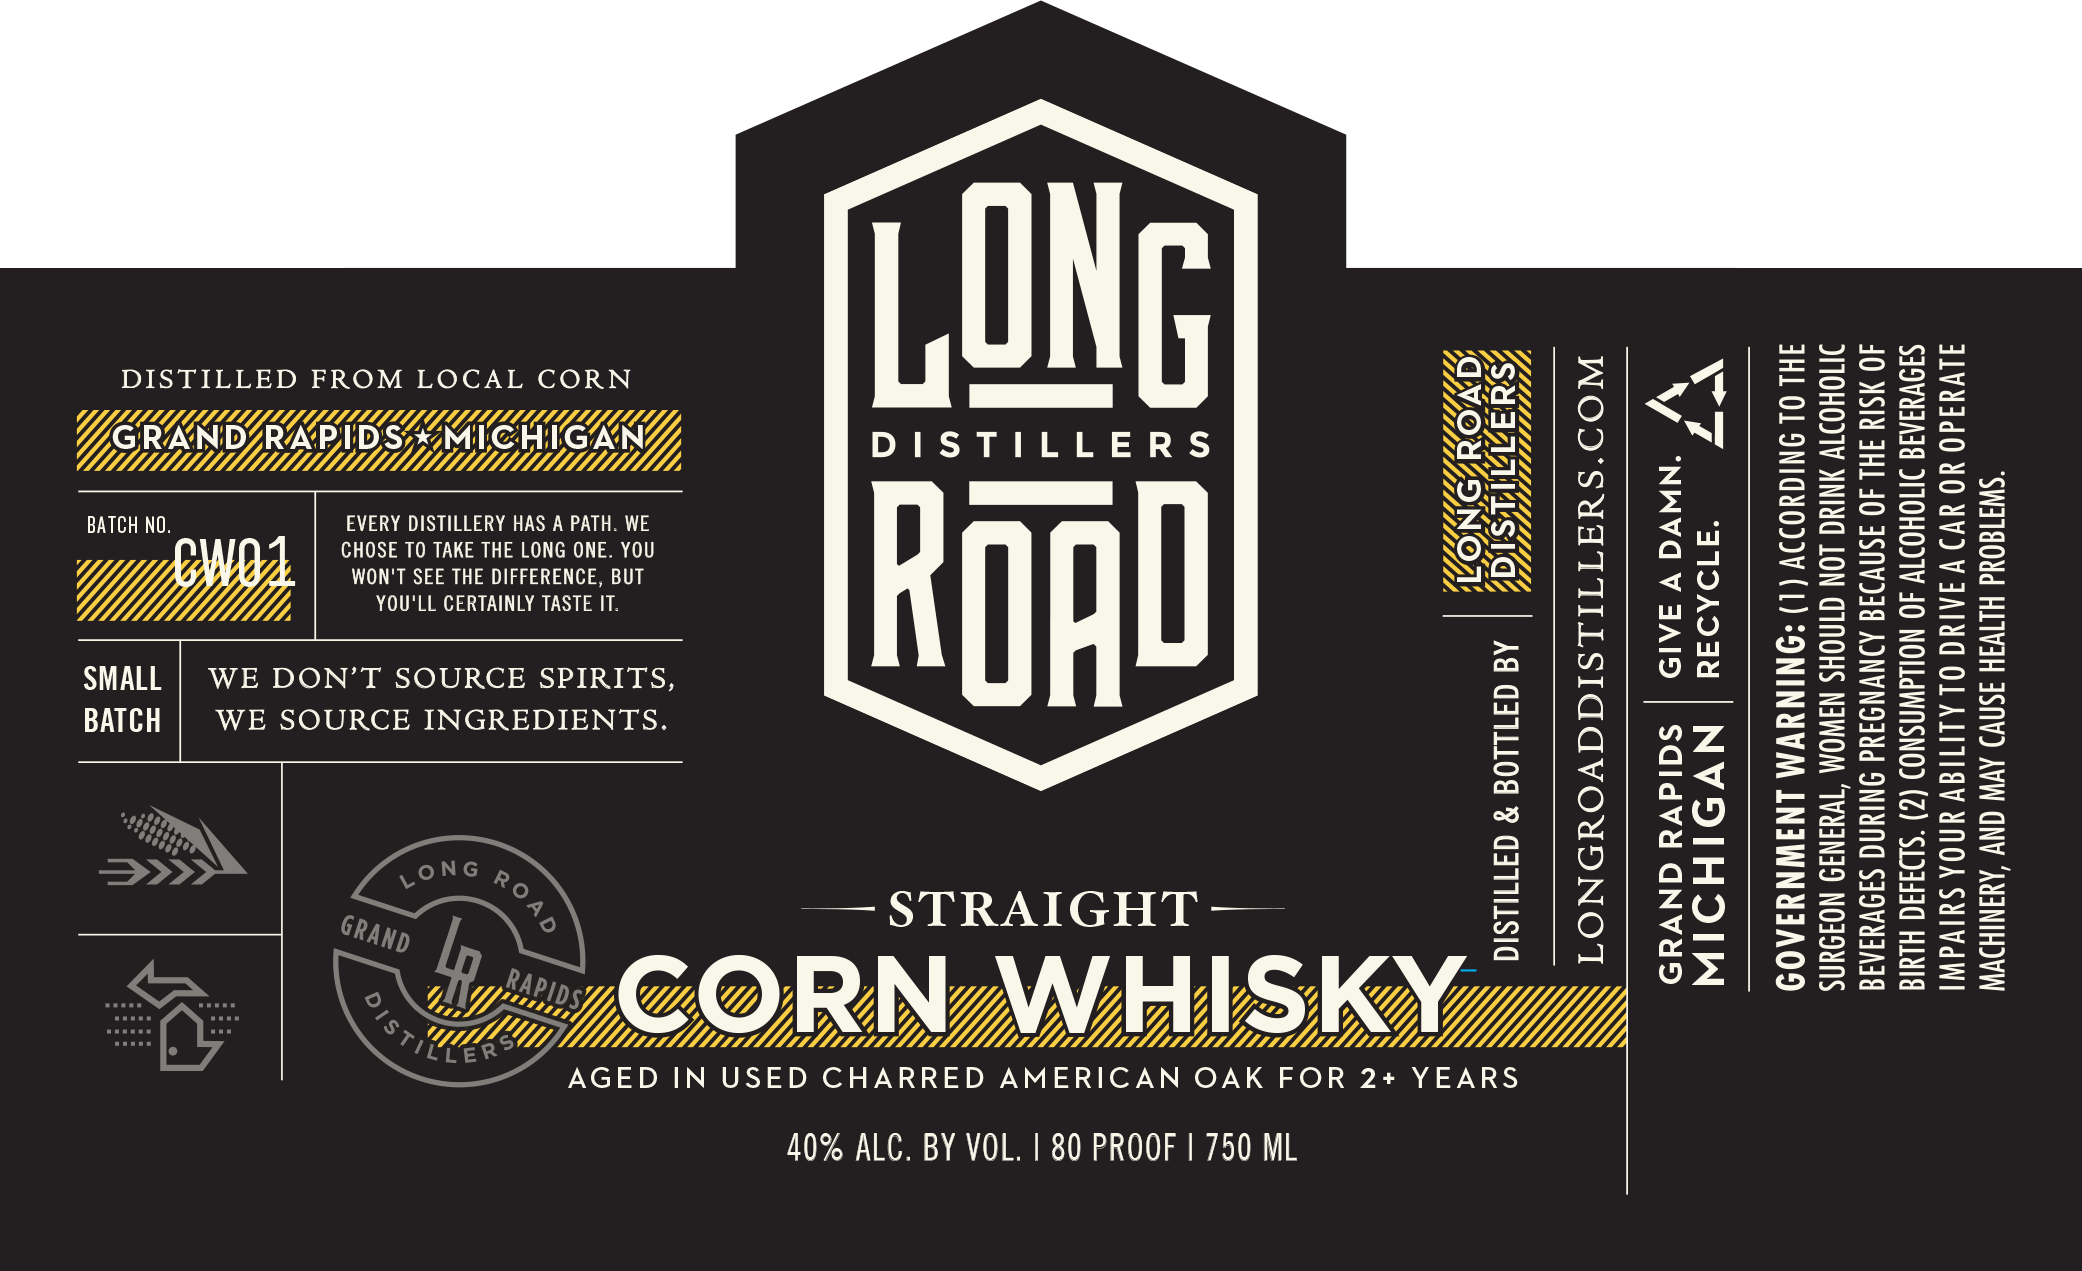 Corn Whisky Long Road Distillers